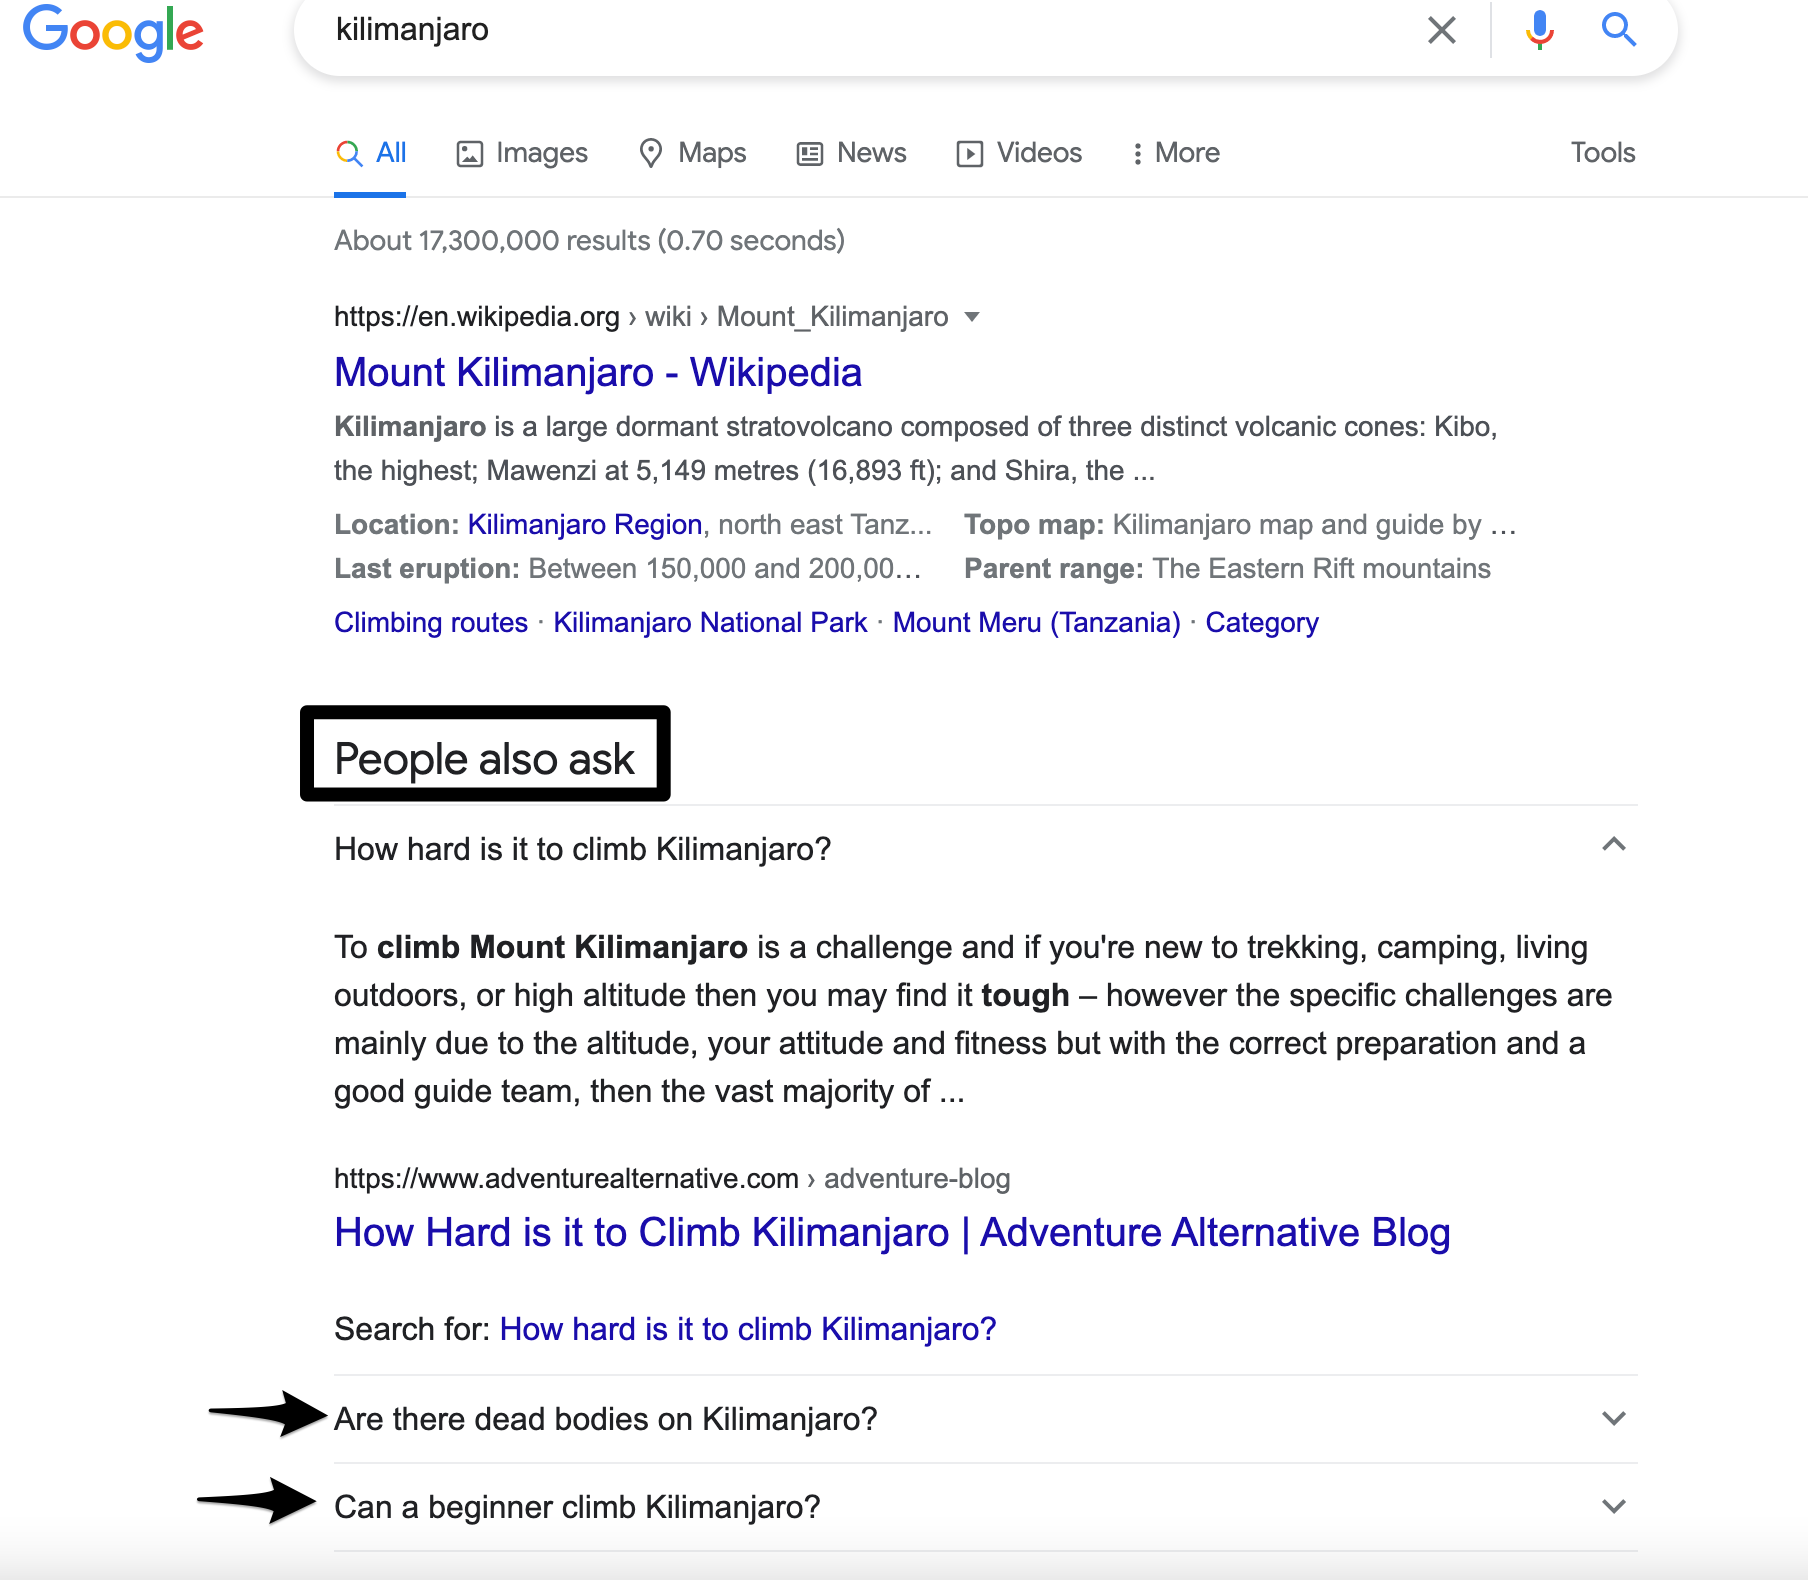 example of analysing search intent in Google search results